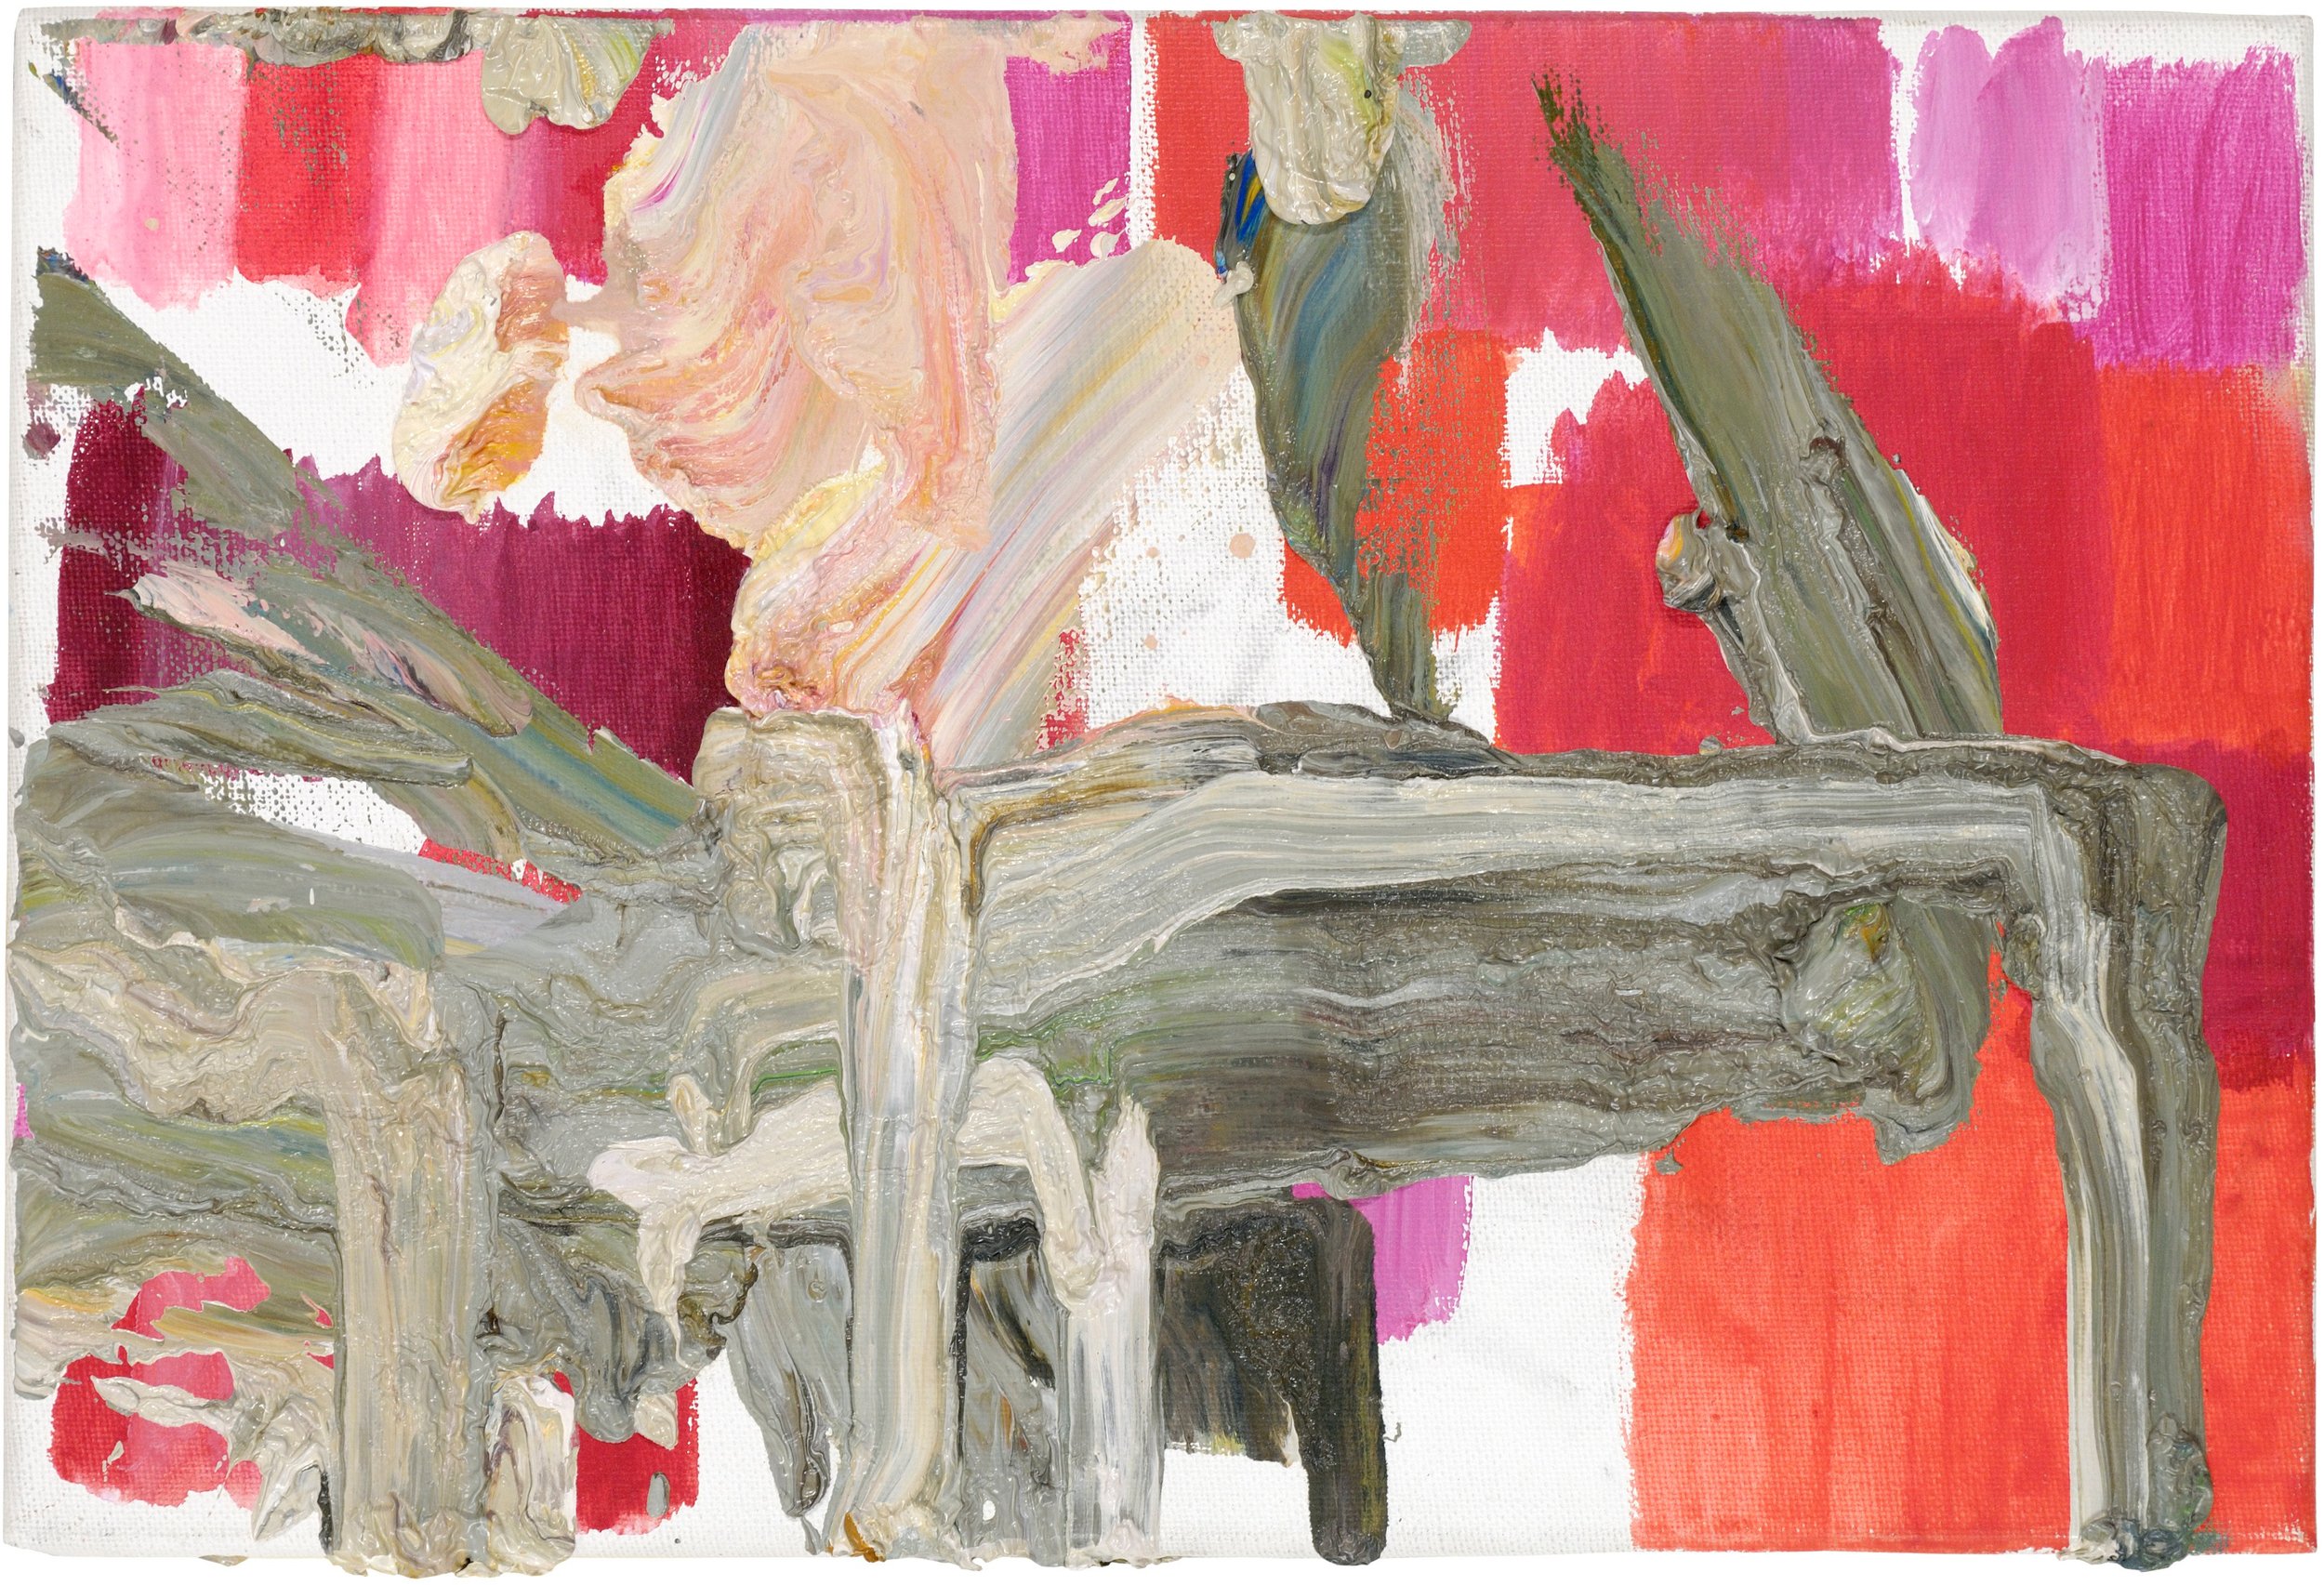 Untitled , 2005, oil on canvas, 20 x 35cm. Private collection, France